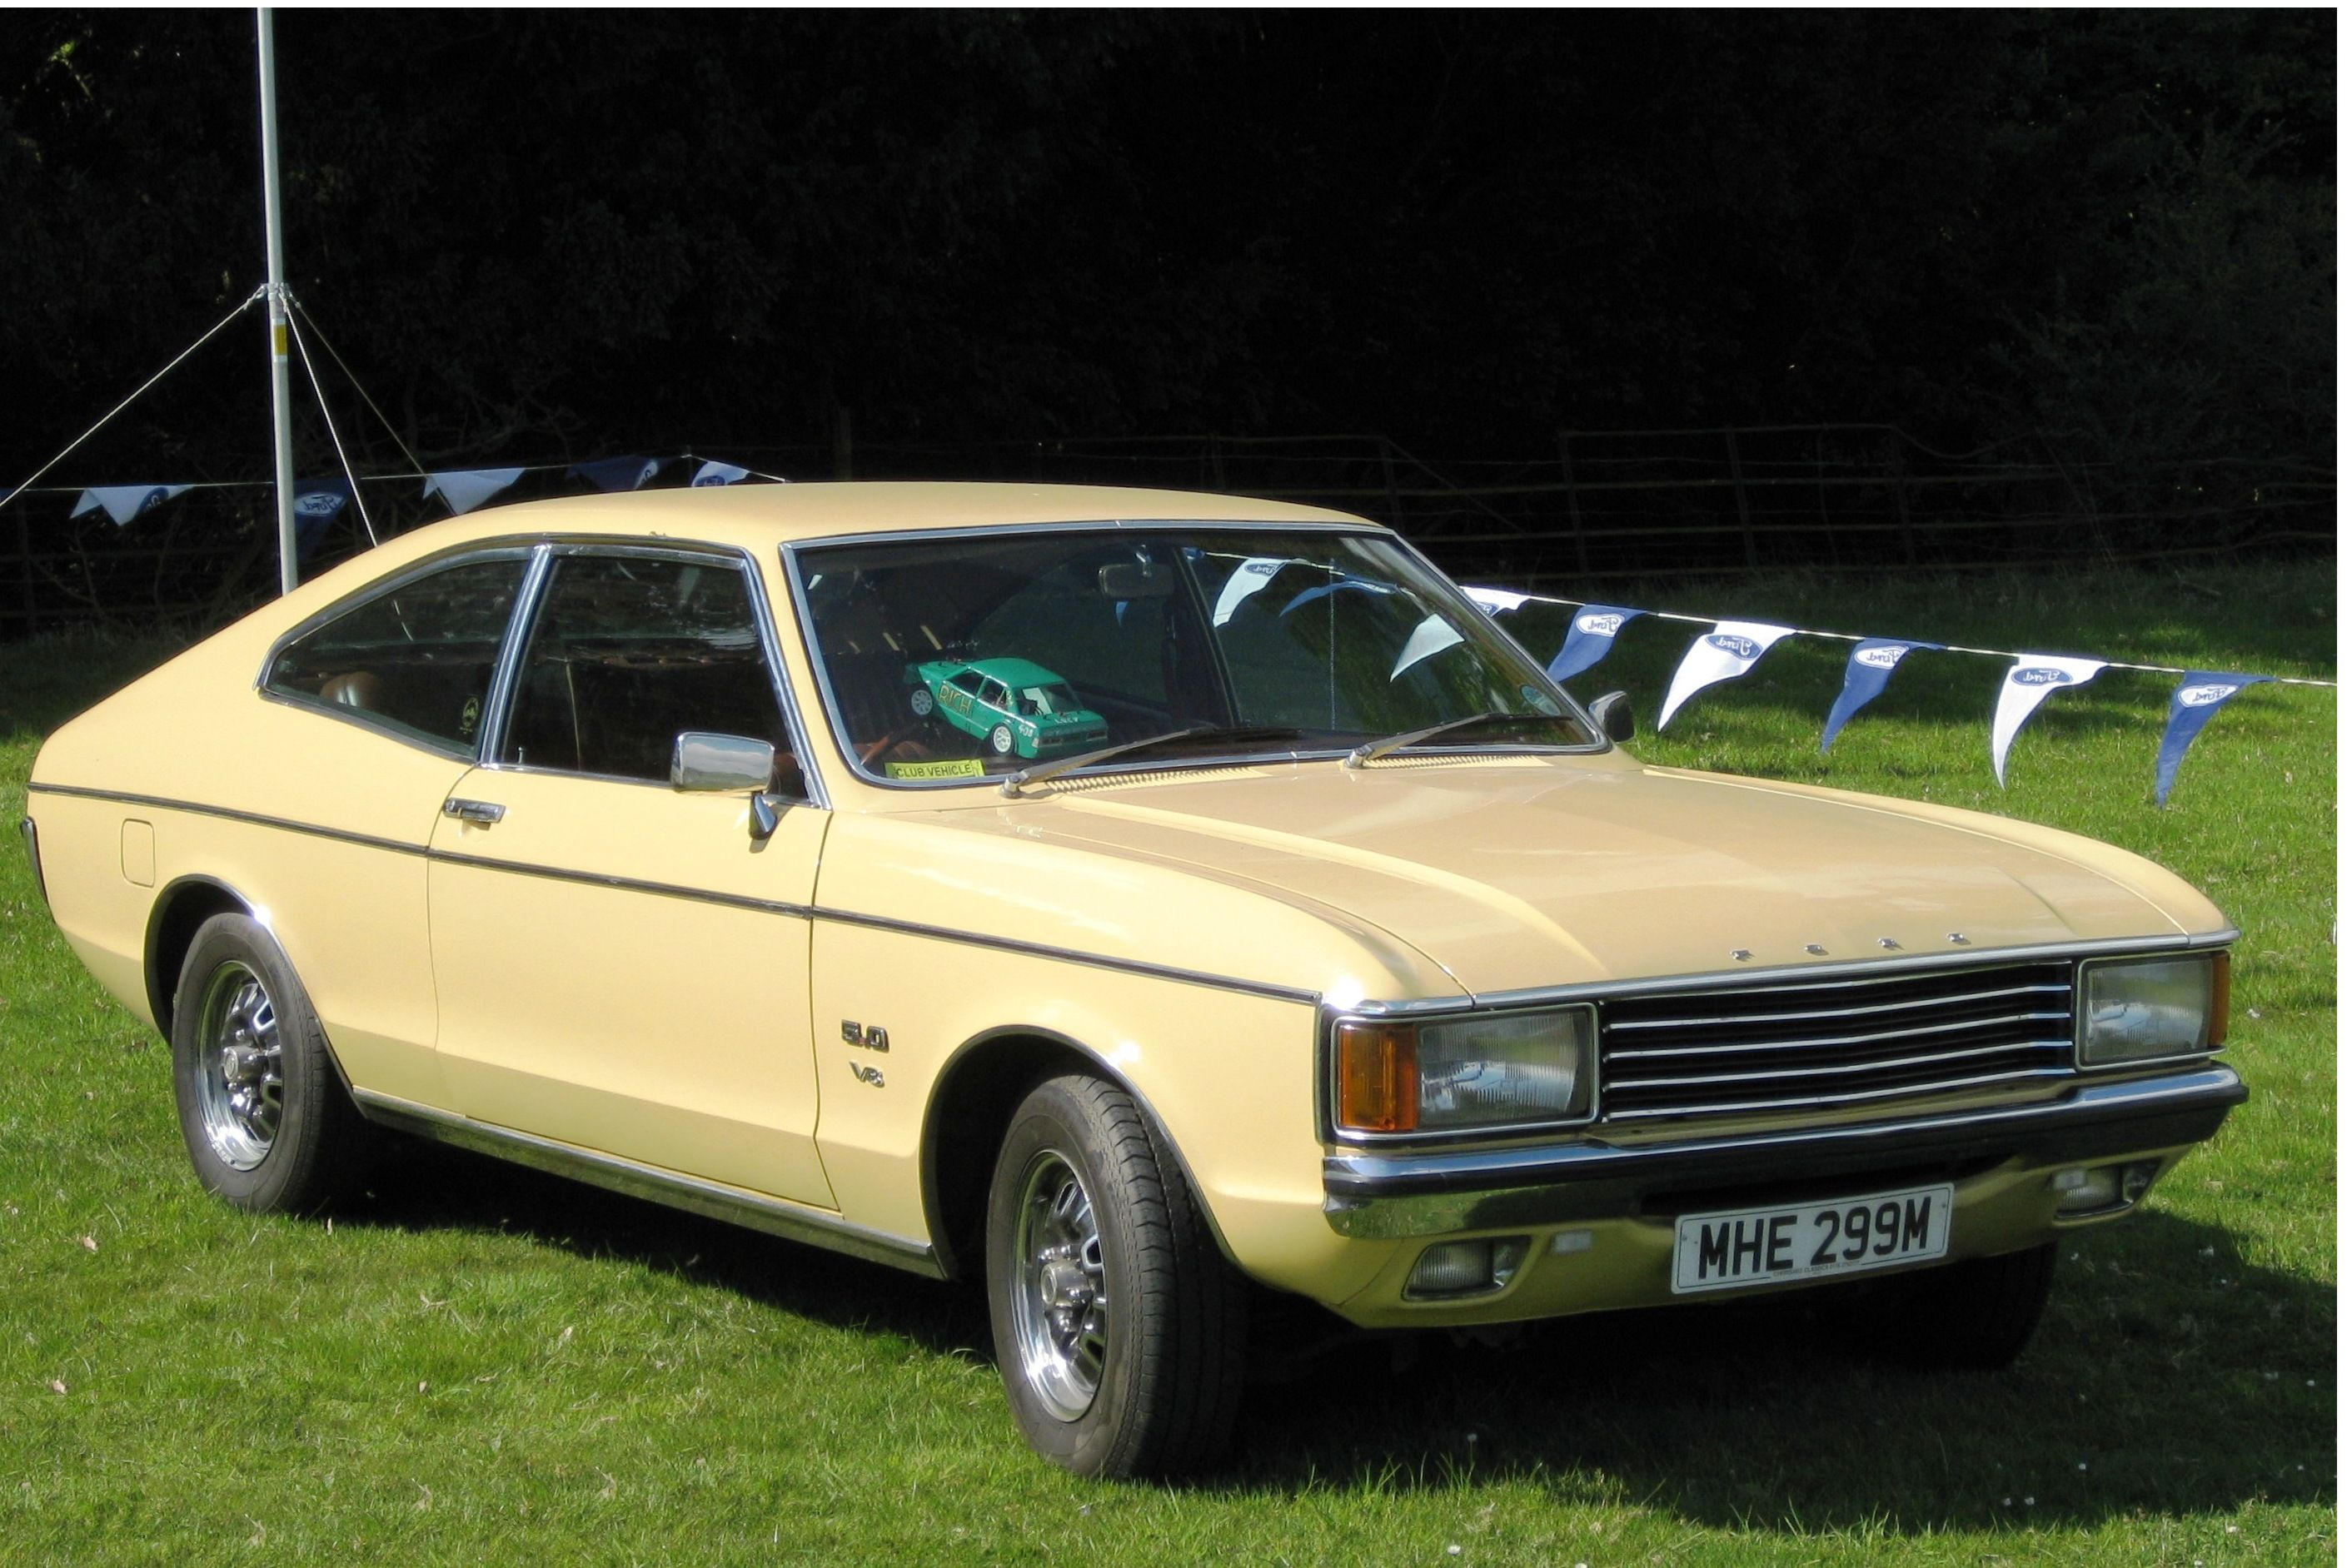 V8 Granada Coupe, great 70's /80's ford Ford granada